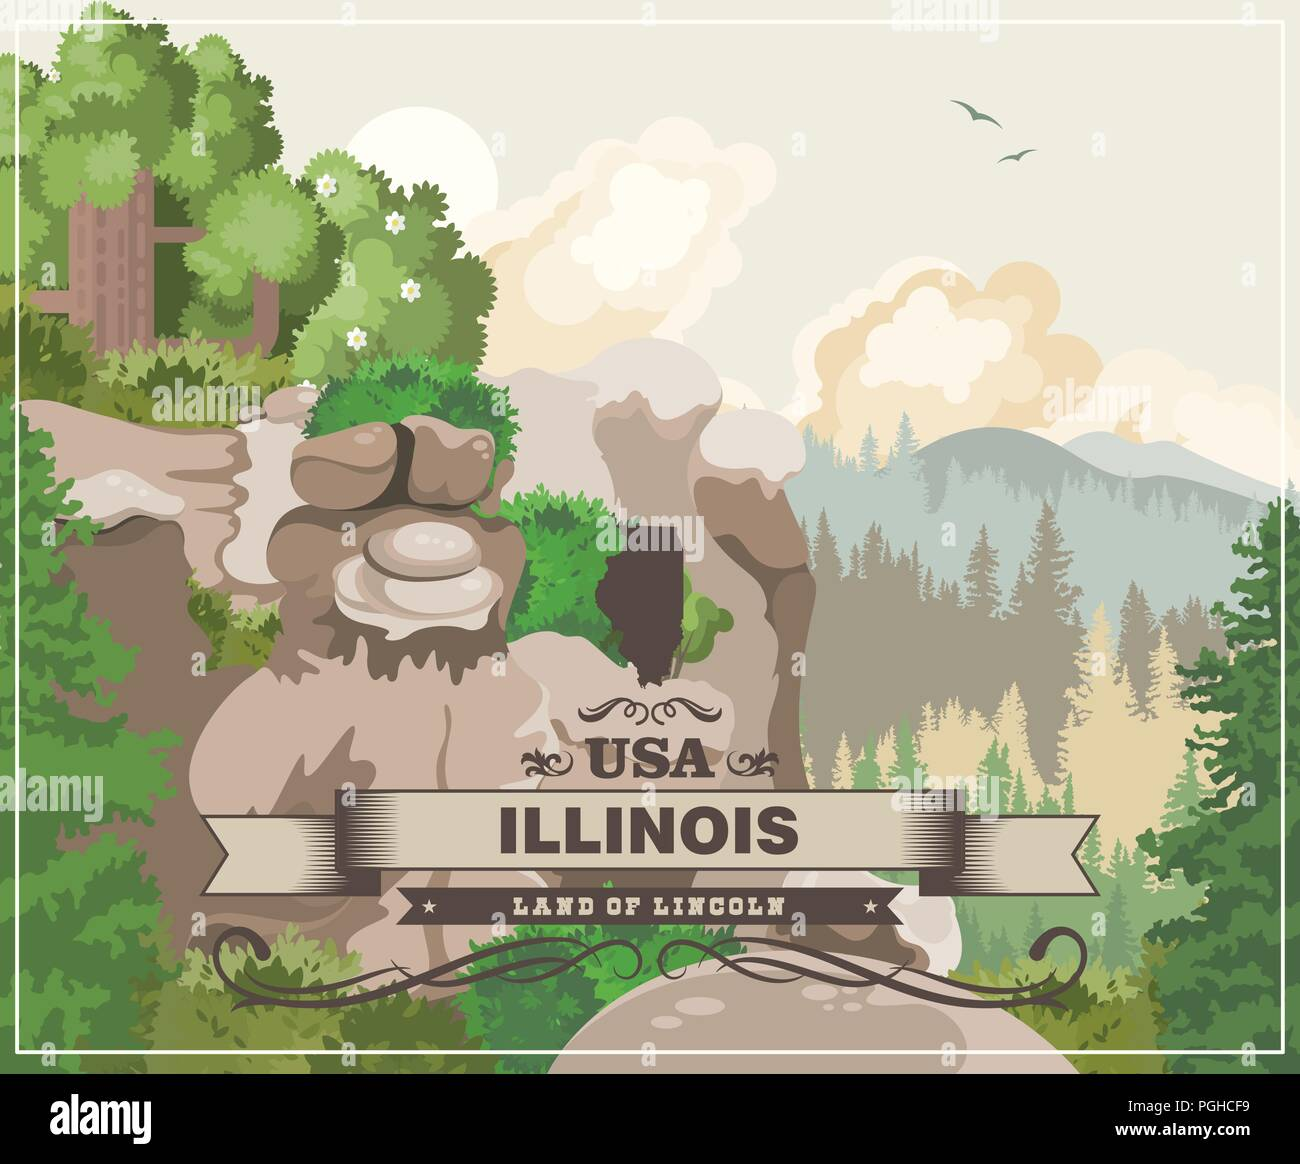 Illinois vector postcard. US state. United States of America. - Stock Vector